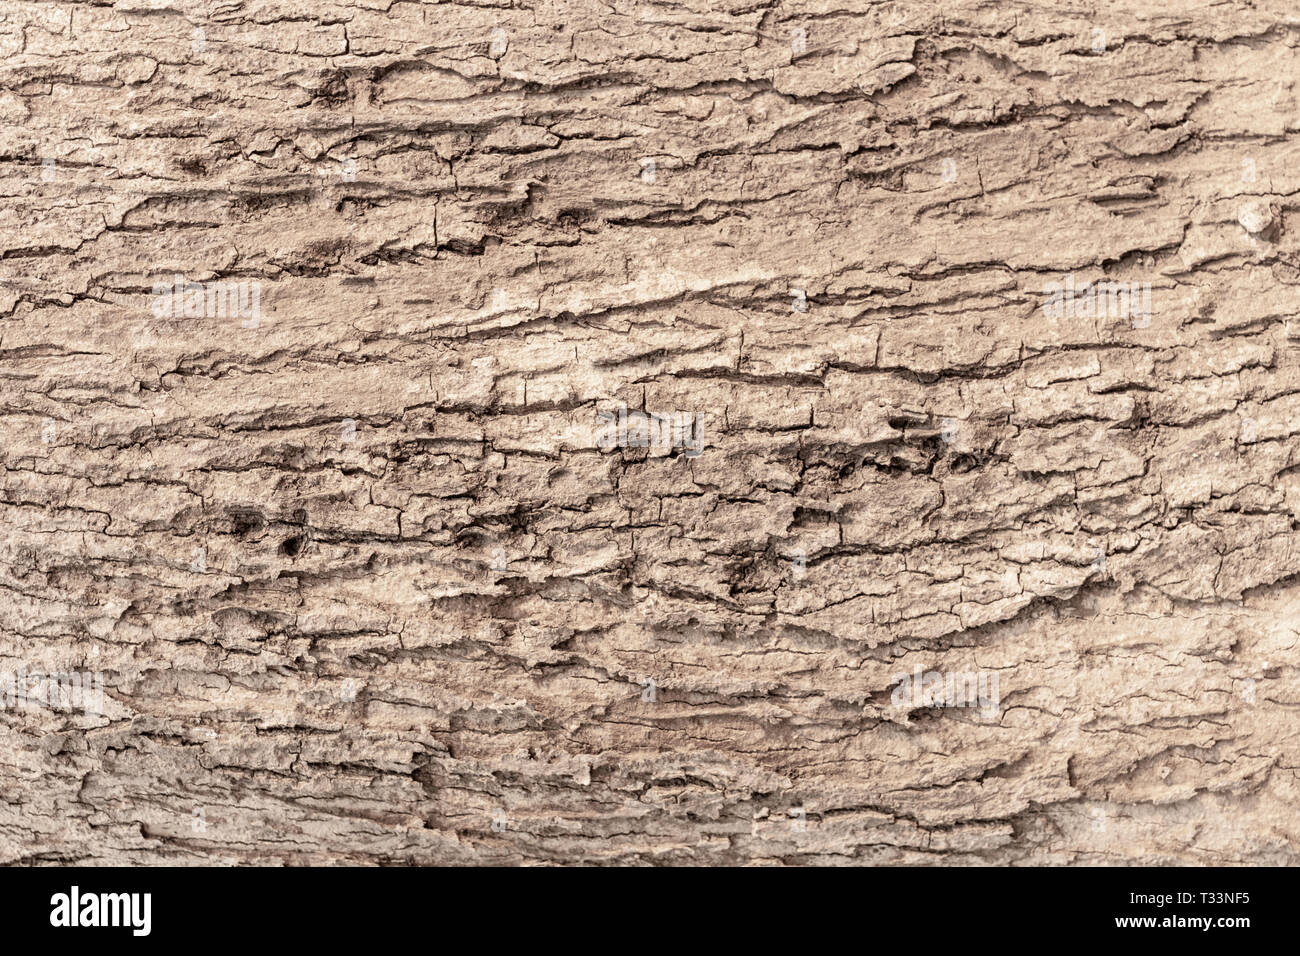 Beautiful gray tree bark background and texture. - Stock Image